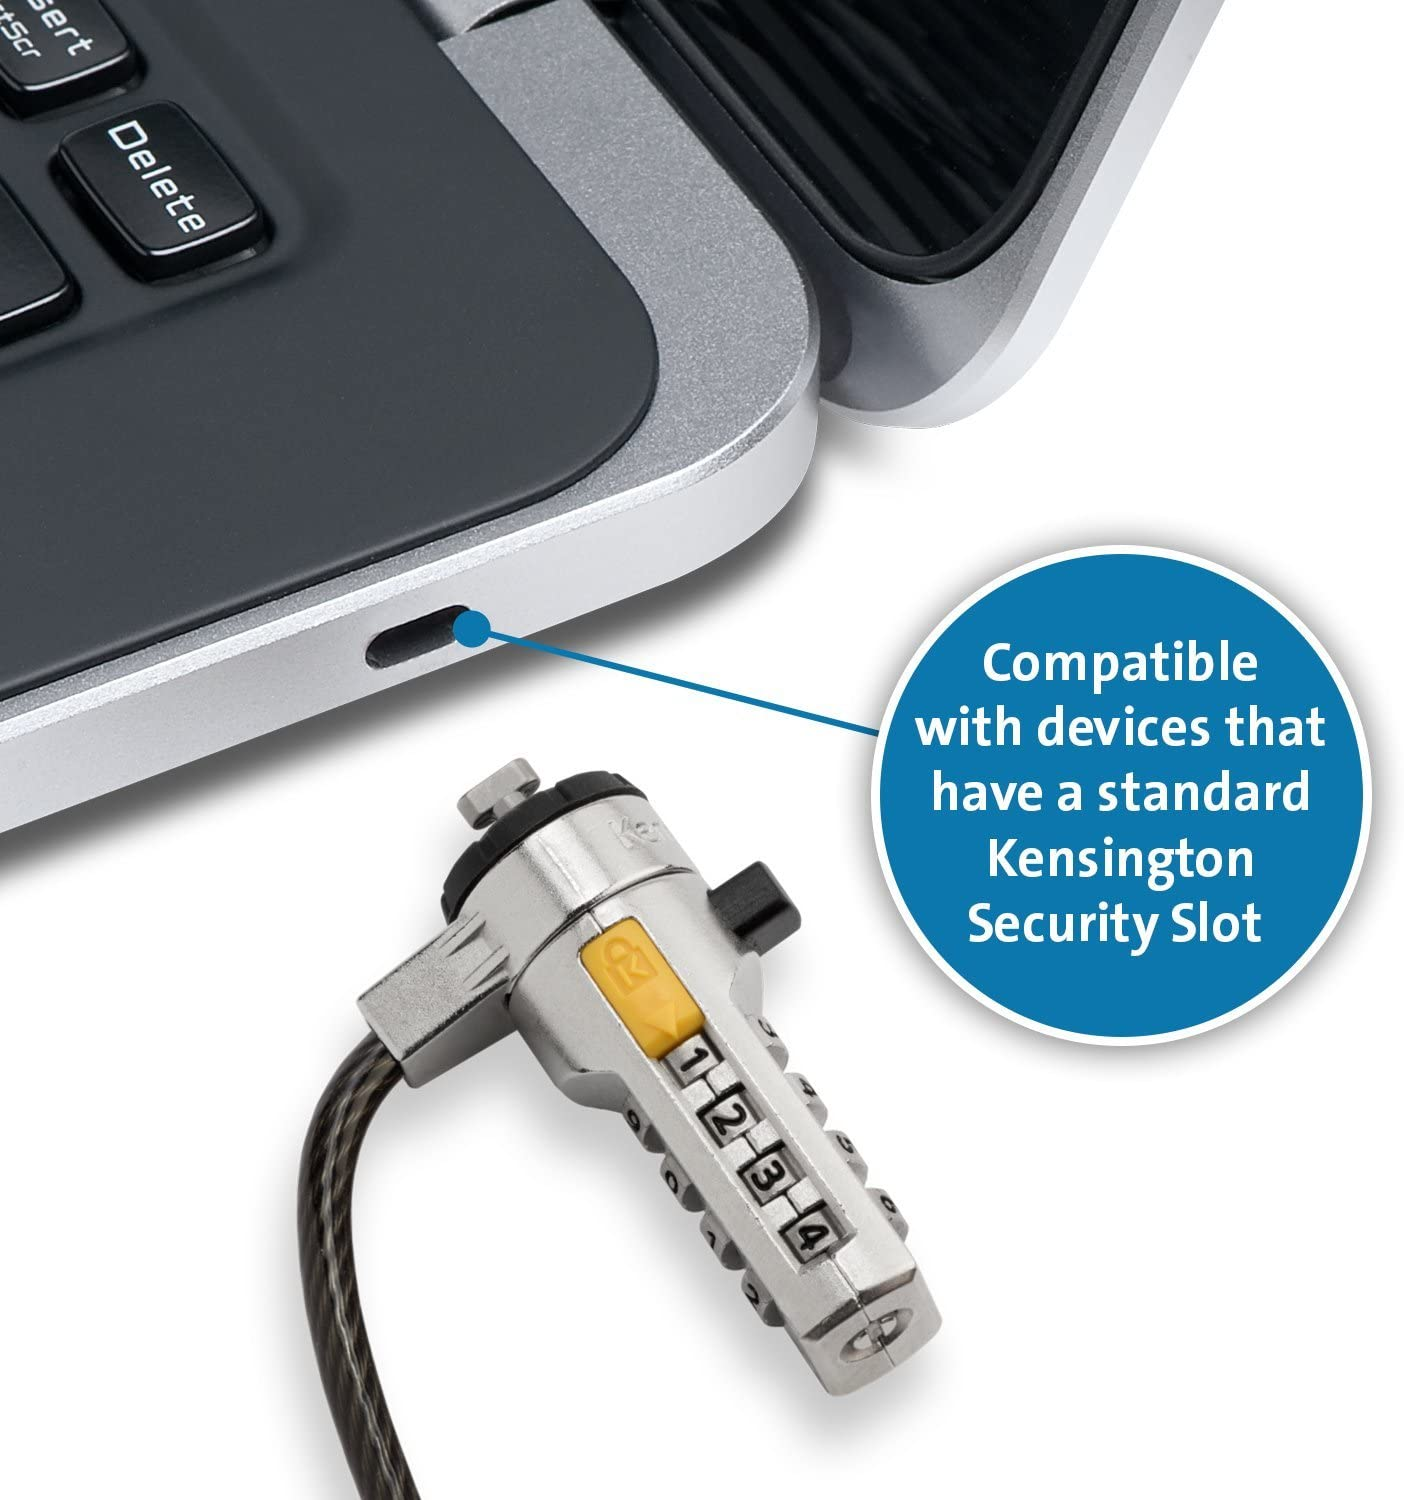 Renewed K64675US Kensington Combination Ultra Cable Lock for Laptops and Other Devices